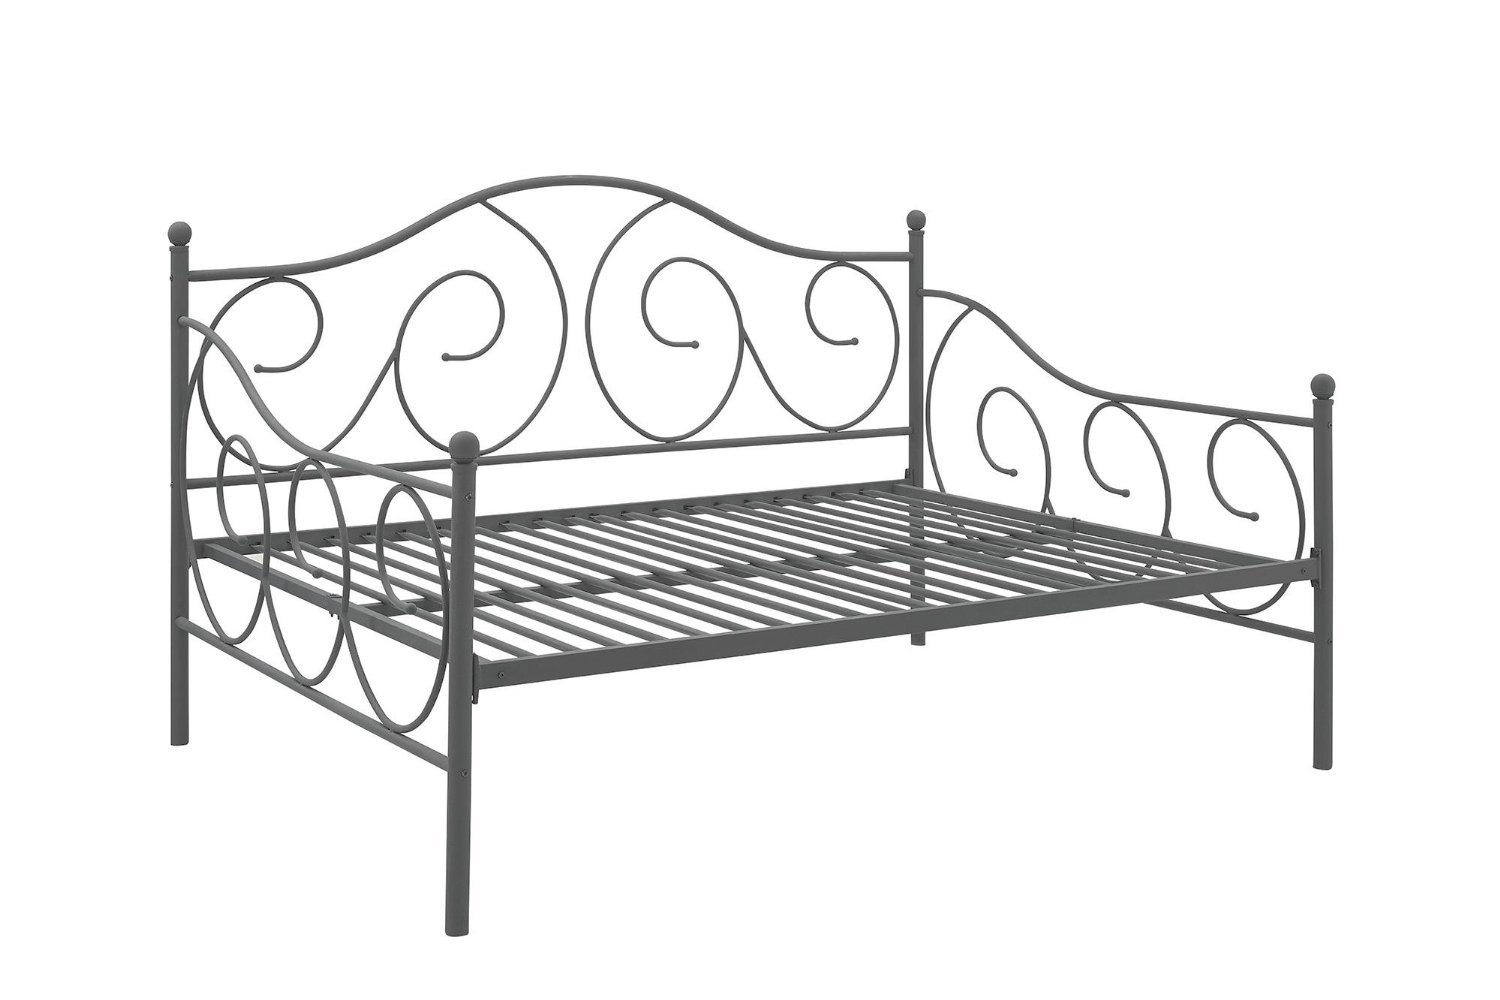 DHP Victoria Daybed Metal Frame, Multifunctional, Includes Metal Slats, Full Size, Pewter